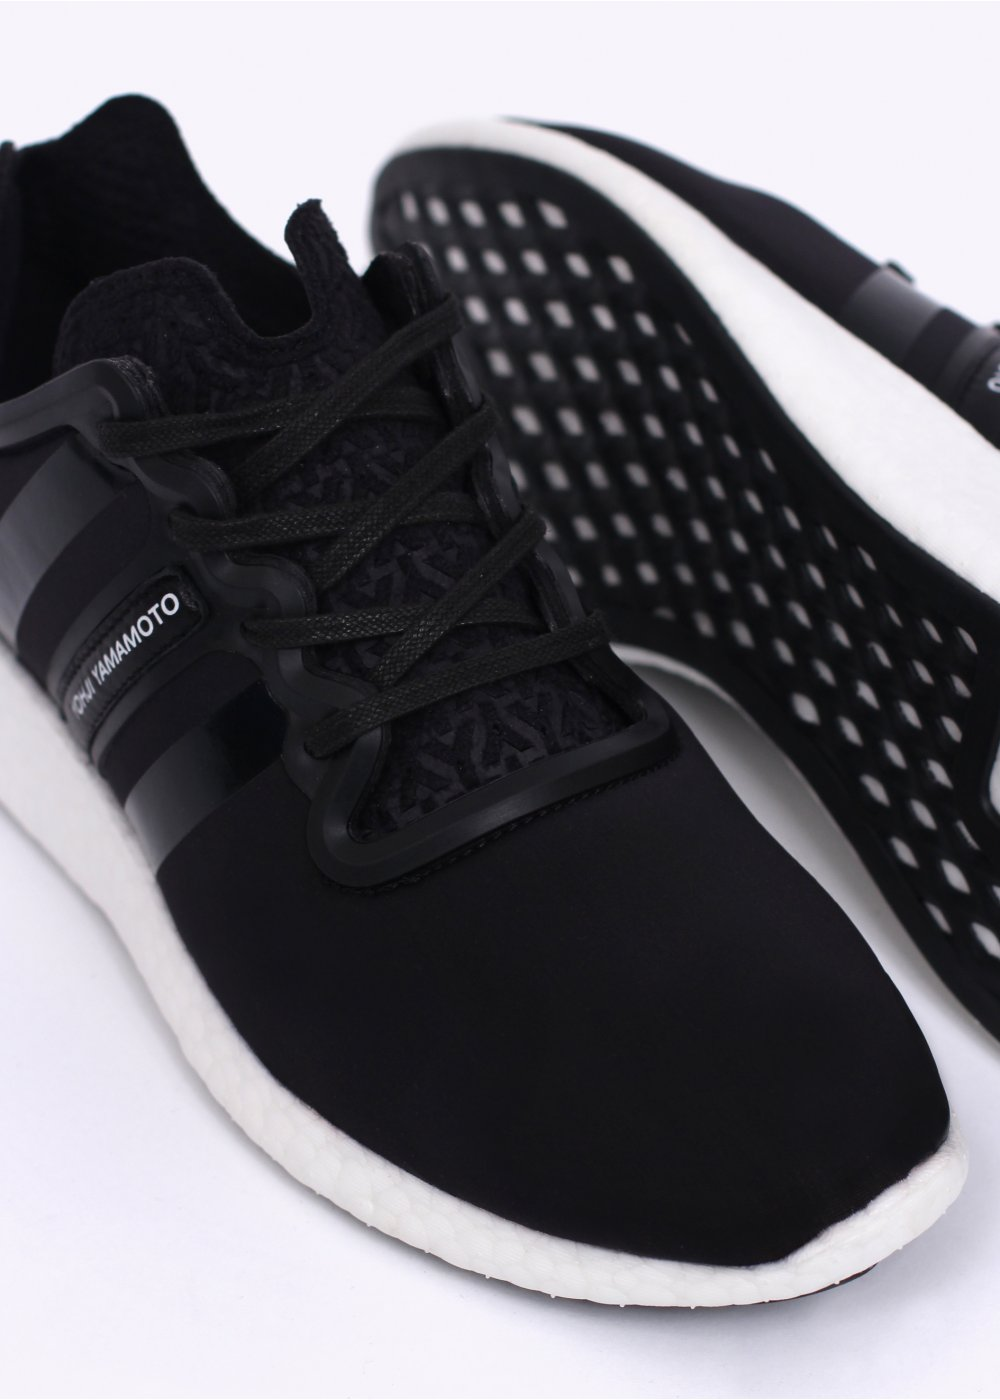 adidas x yohji yamamoto y 3 yohji boost trainers black. Black Bedroom Furniture Sets. Home Design Ideas